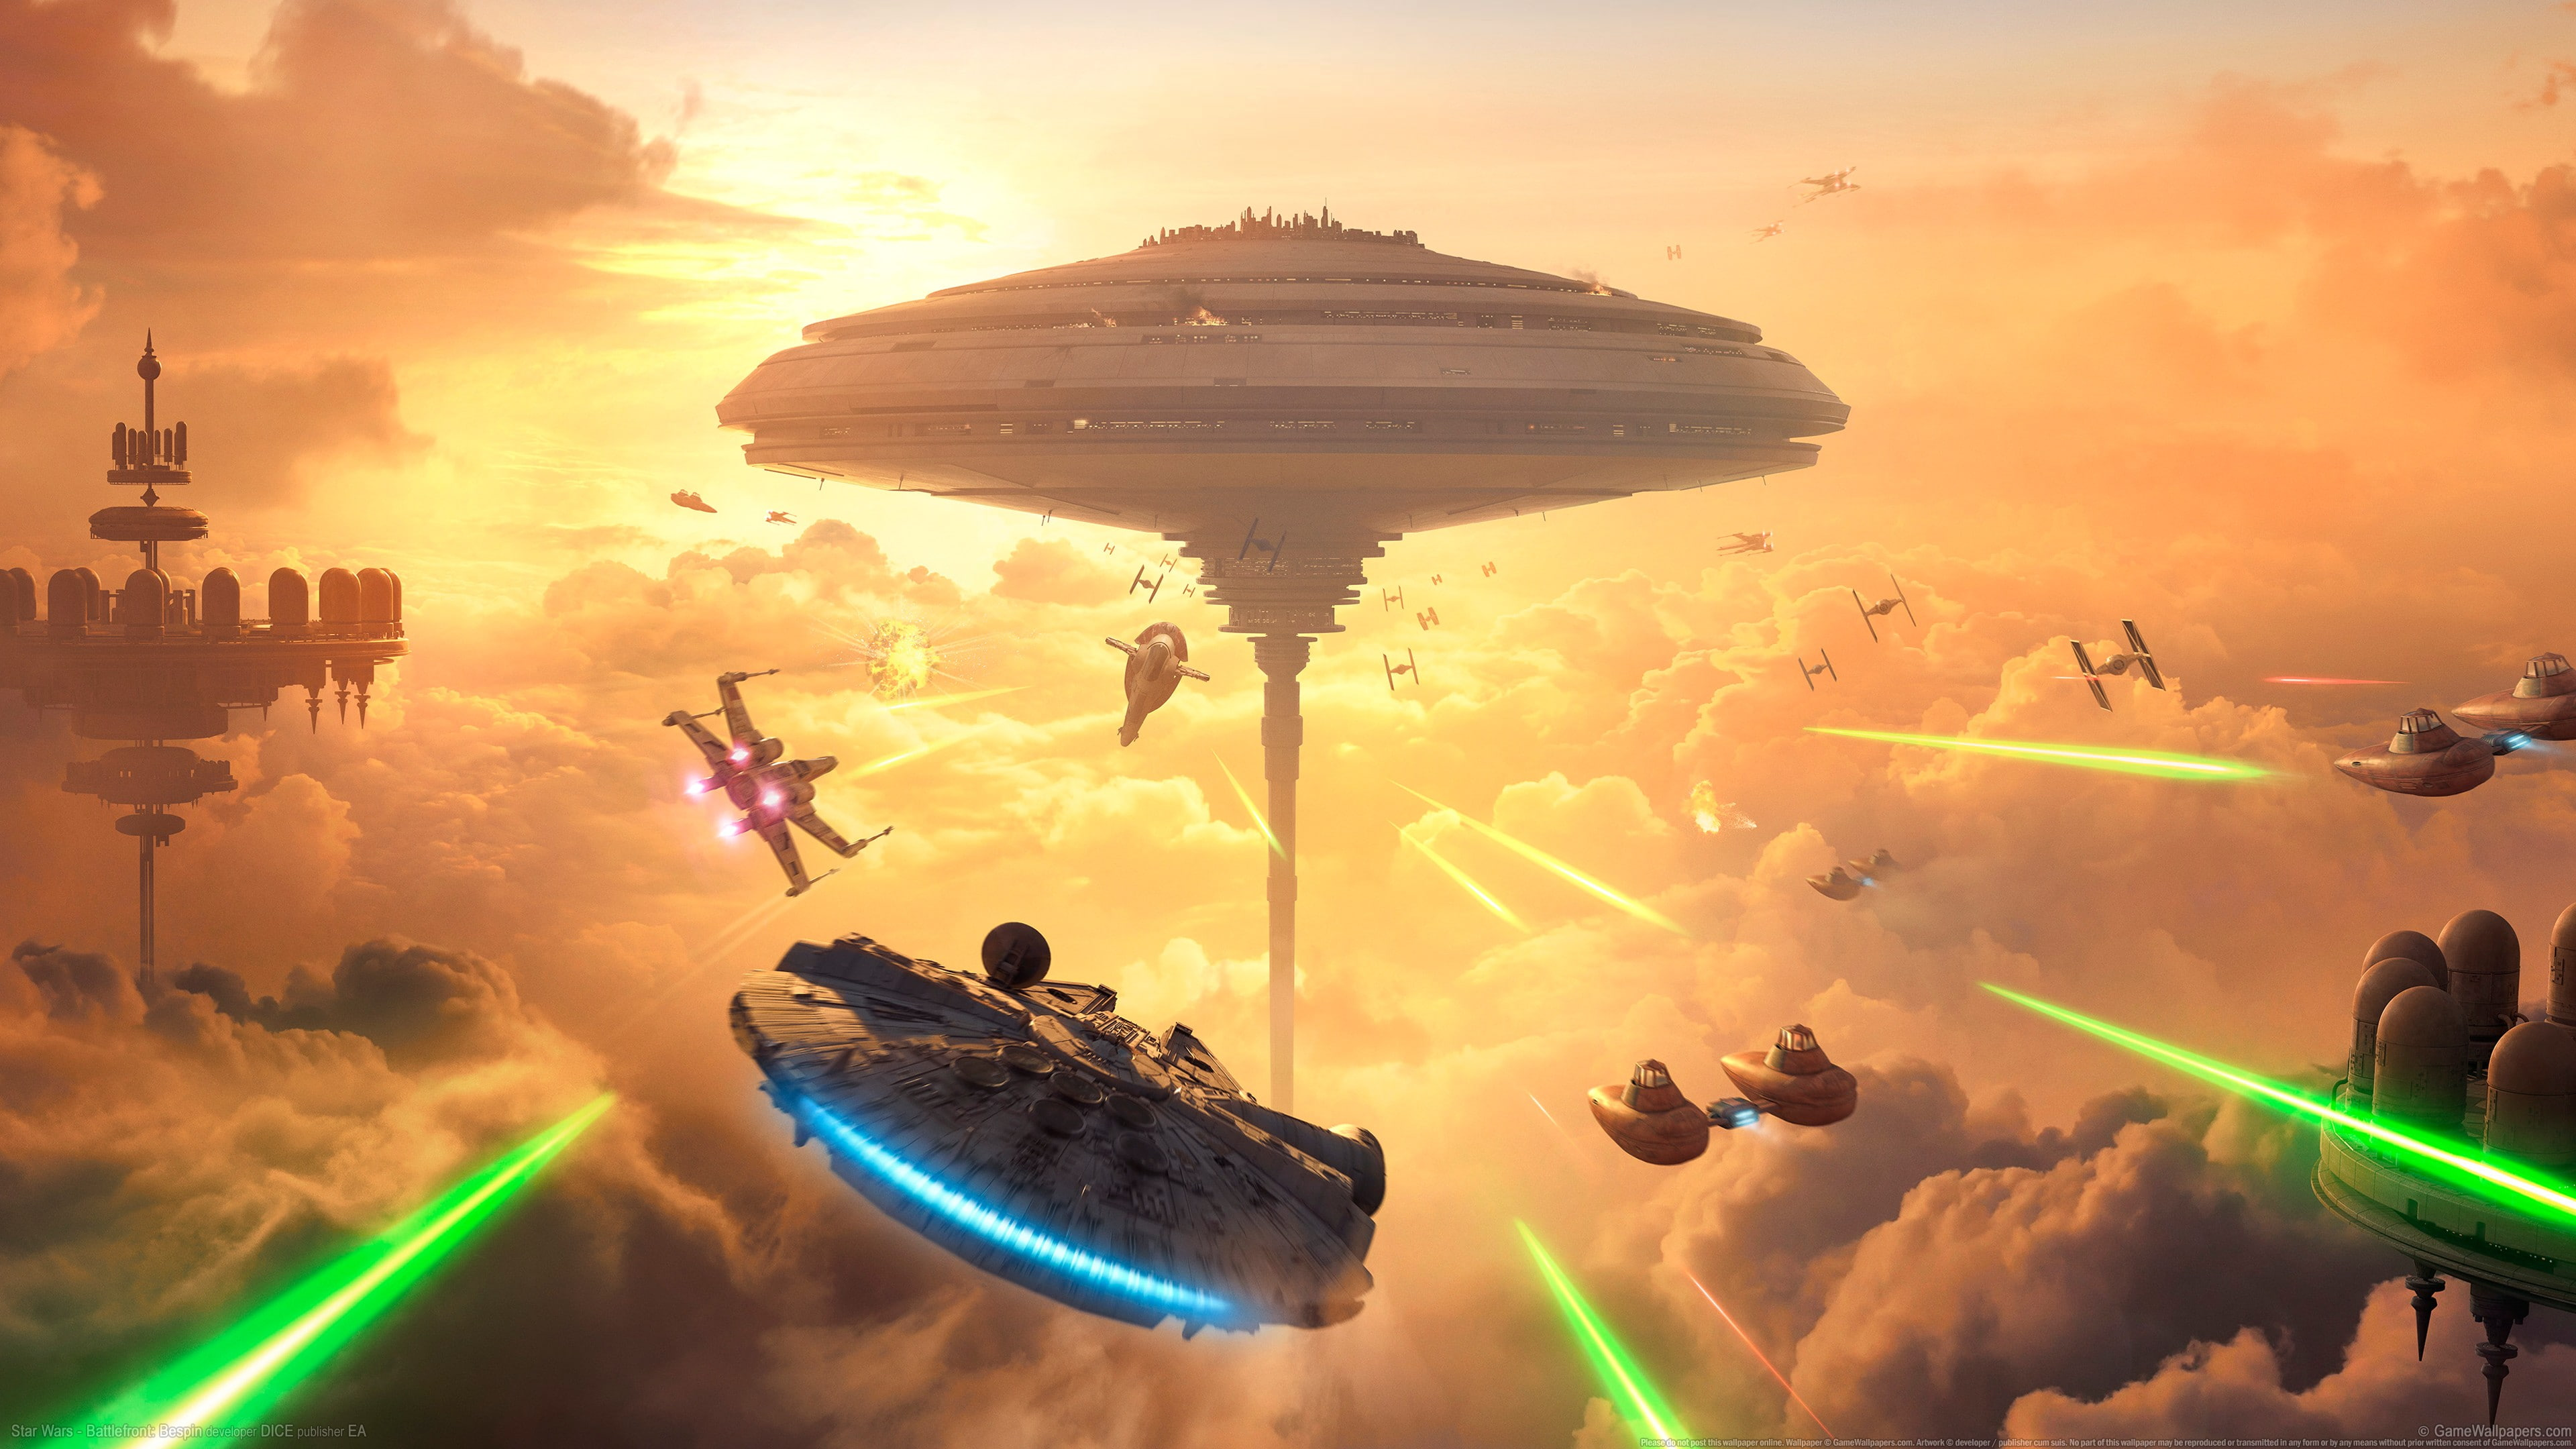 HD wallpaper Bespin cloud city Millennium Falcon Star Wars 3840x2160